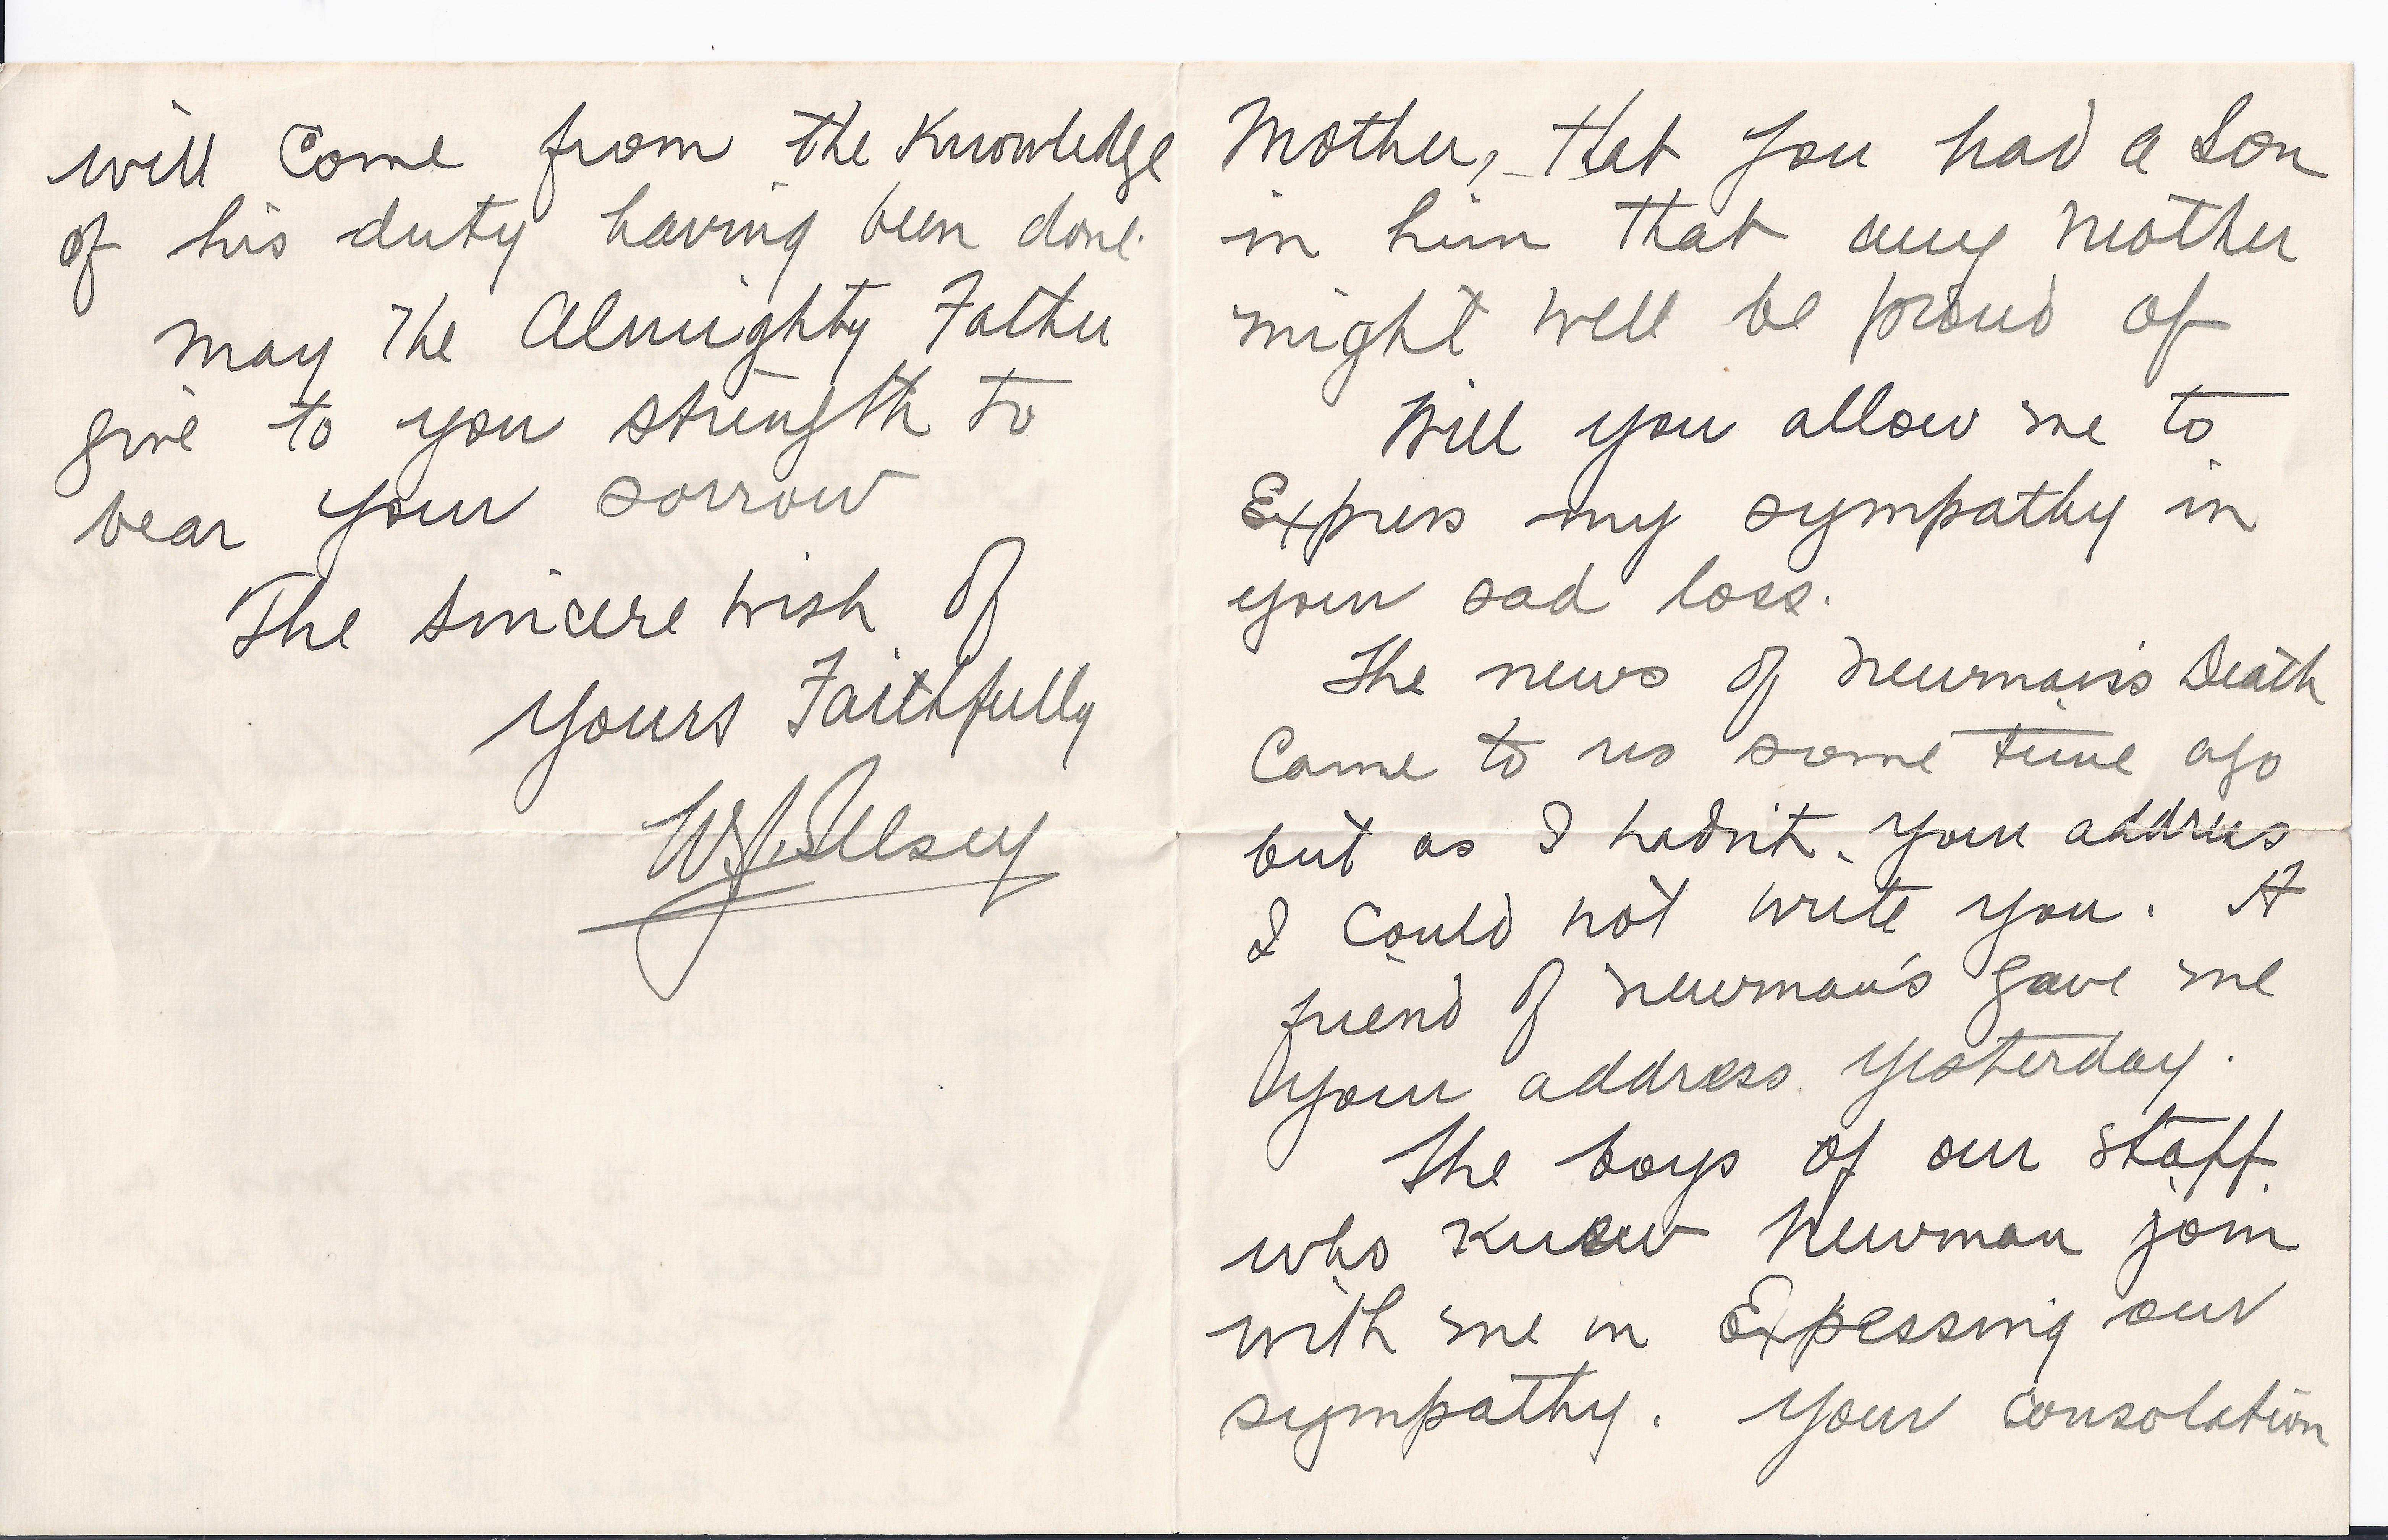 Letter– Letter from military regarding Newman Campbell's death pages 2 and 3.